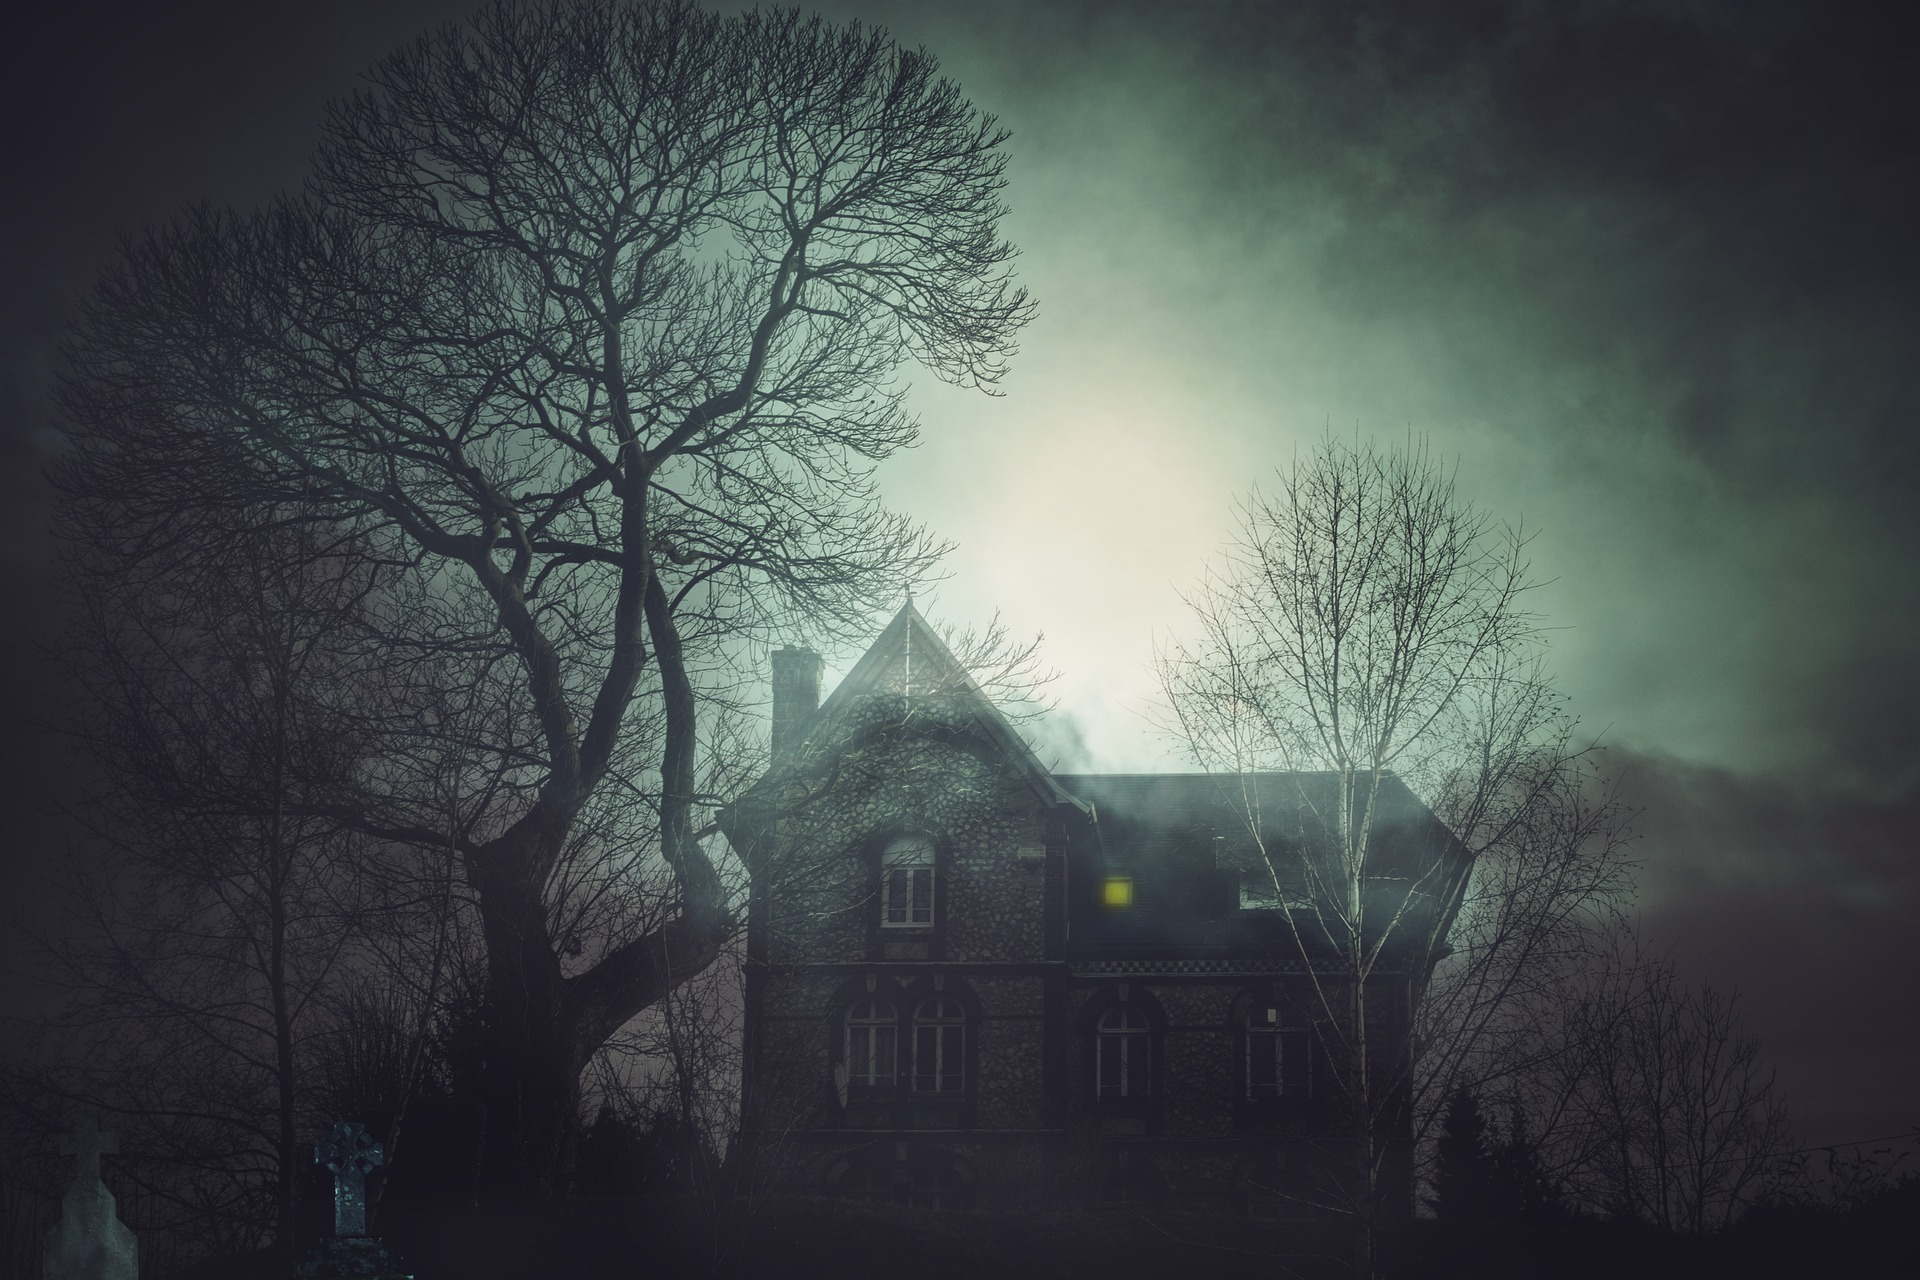 Image of a house on a moonlit night